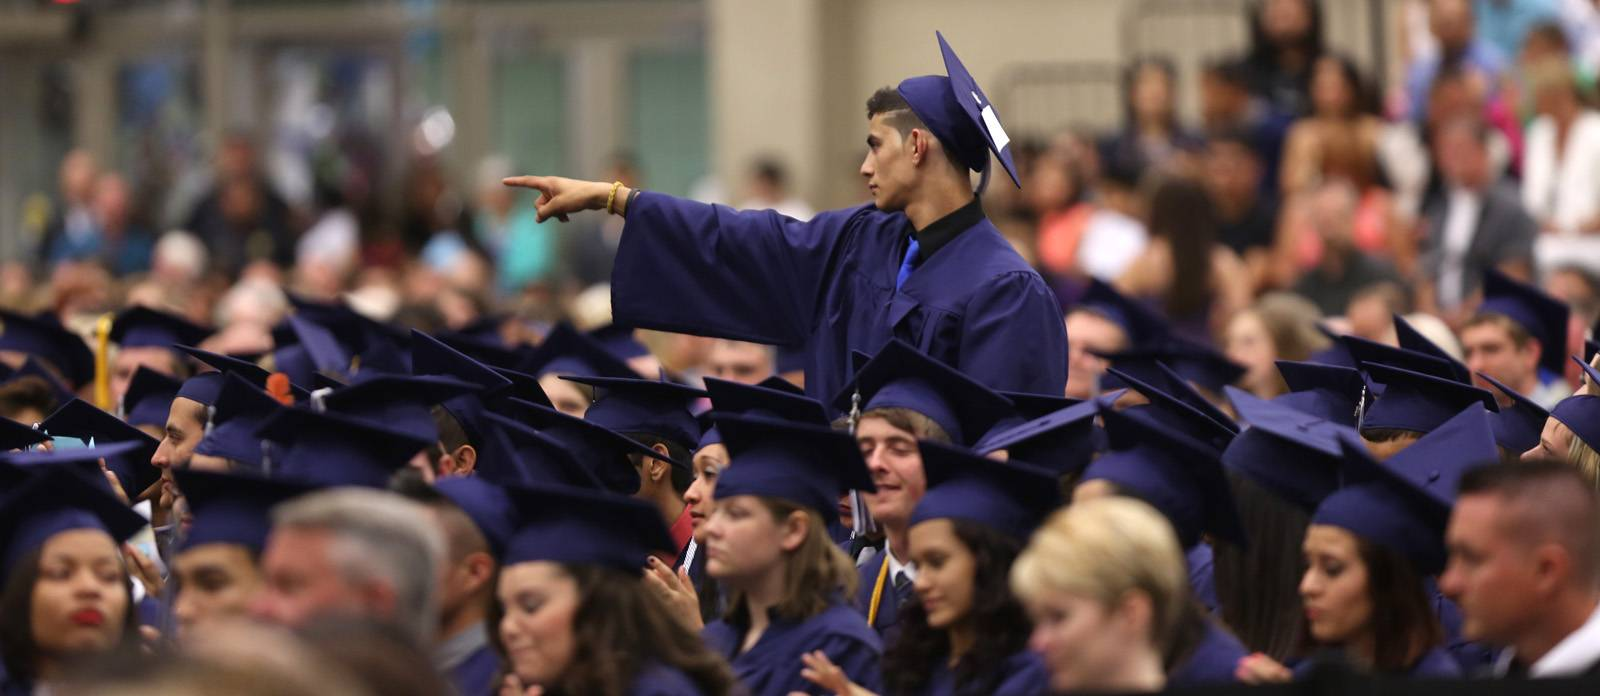 Community High School of West Chicago held its graduation Friday, June 6 at the College of DuPage in Glen Ellyn.